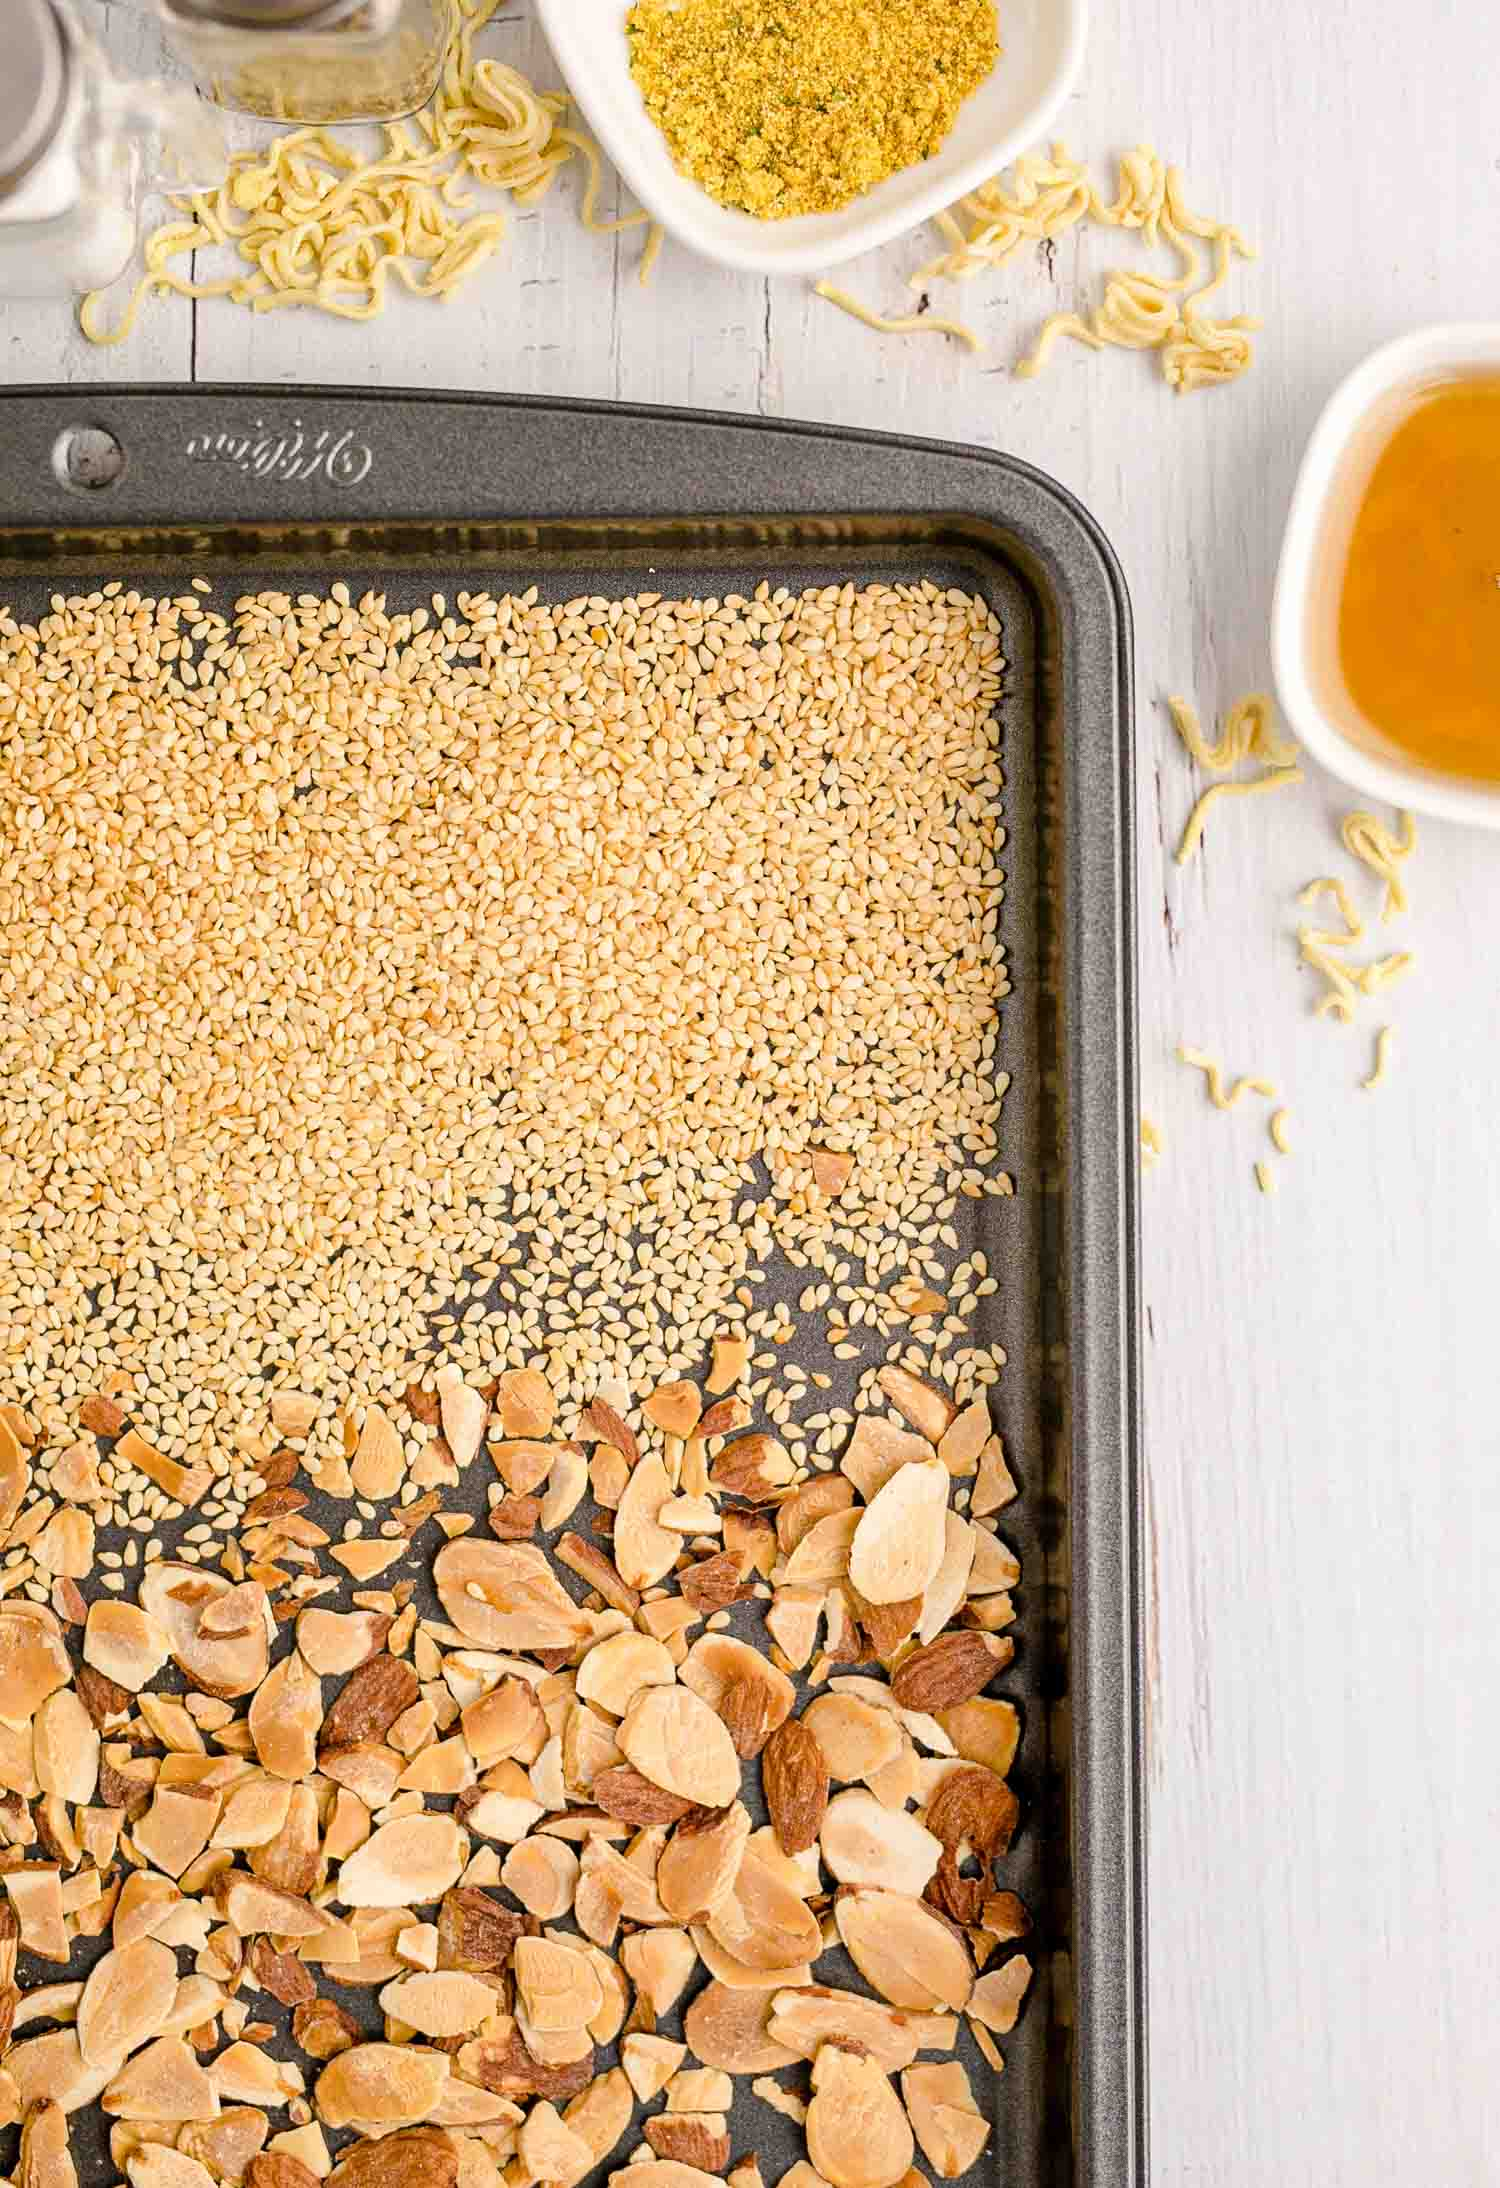 Toasted almonds and sesame seeds on a sheet pan.